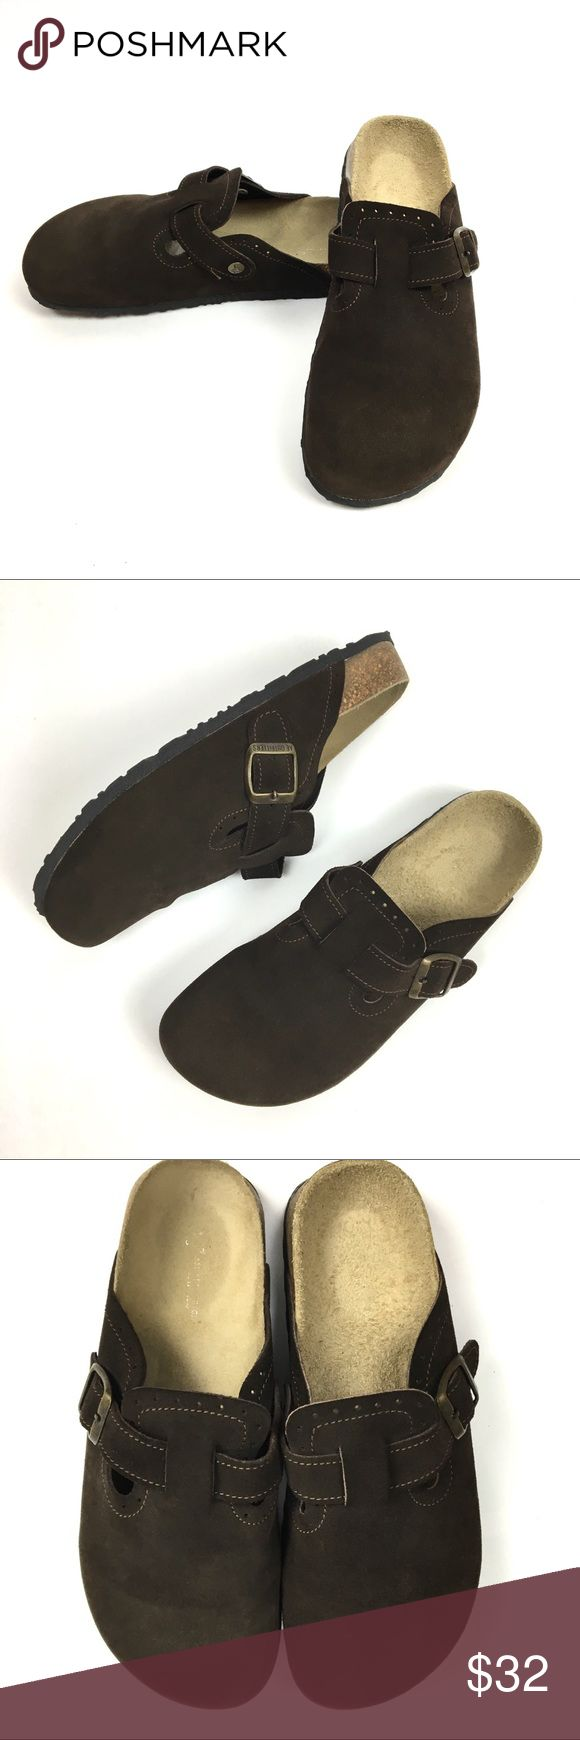 NWOT American Eagle Brown Suede Clogs size 8 American Eagle Suede slip on Clogs. Step into style & channel your cooler-weather vibes! Suede upper. Contoured footbed. Buckle detail for adjustable width. Treaded rubber outsole. New without tags-These have no signs of wear! Size 8. American Eagle Outfitters Shoes Mules & Clogs